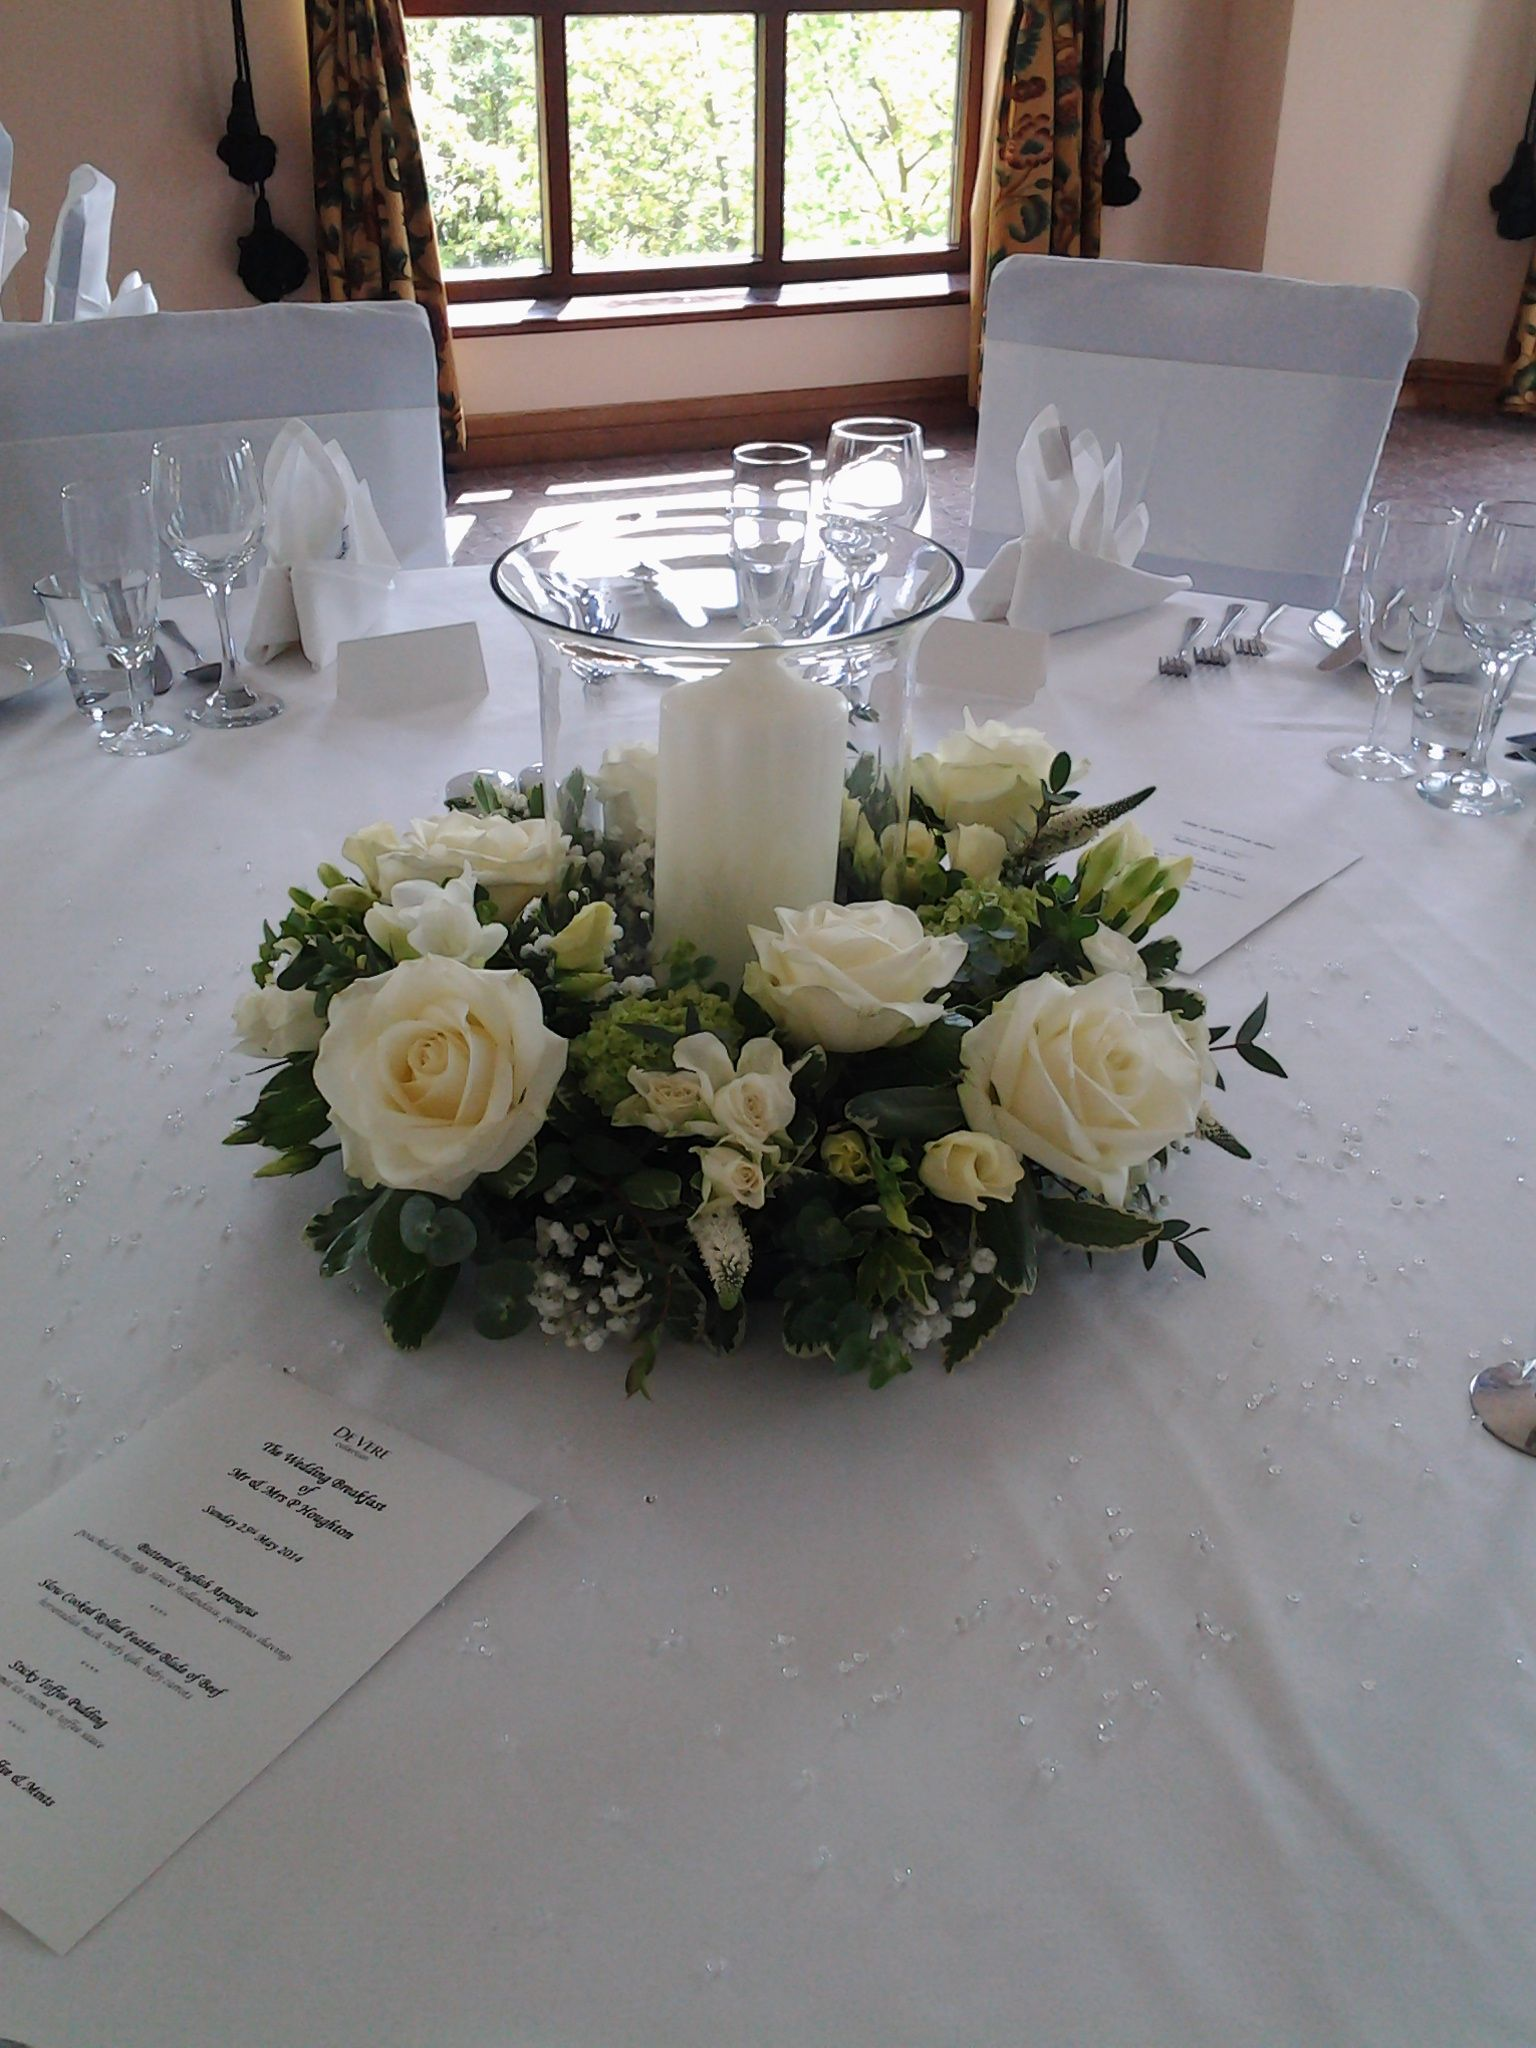 wedding reception table decoration made using fresh flowers and foliage with hurricane lamp and